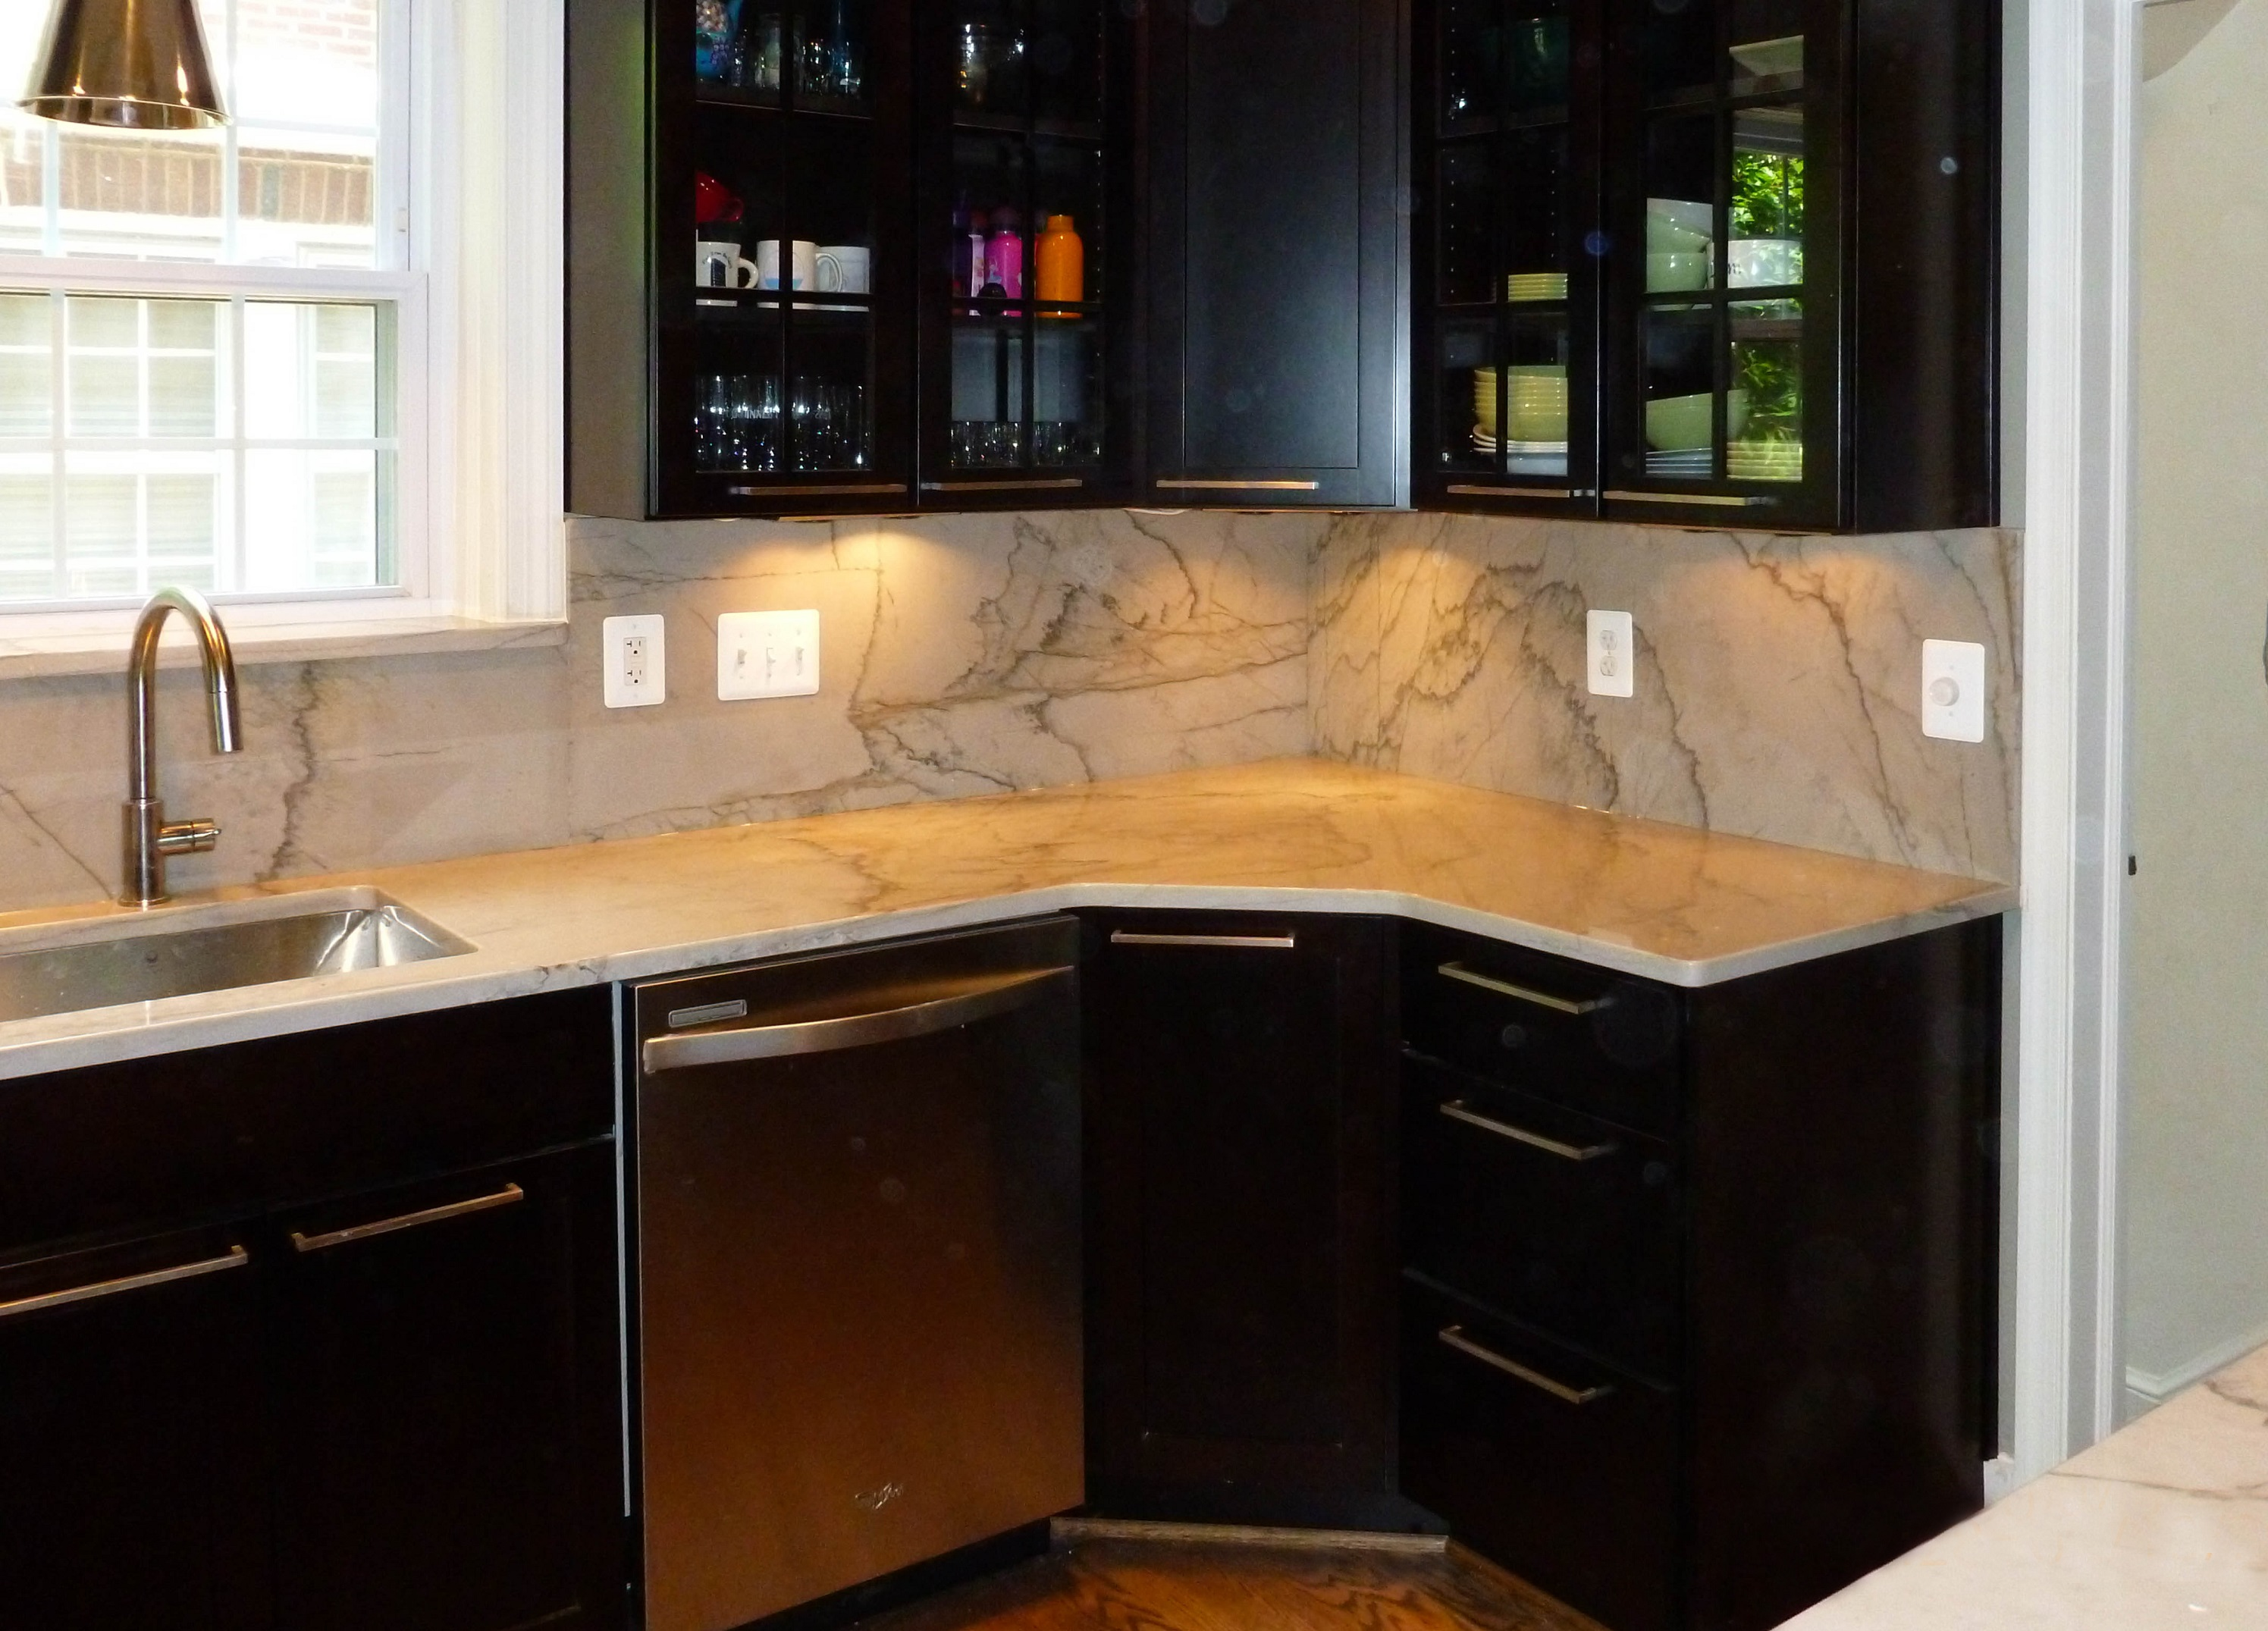 Fairfax home remodeling contractor elite contractor services for Bath remodel fairfax va